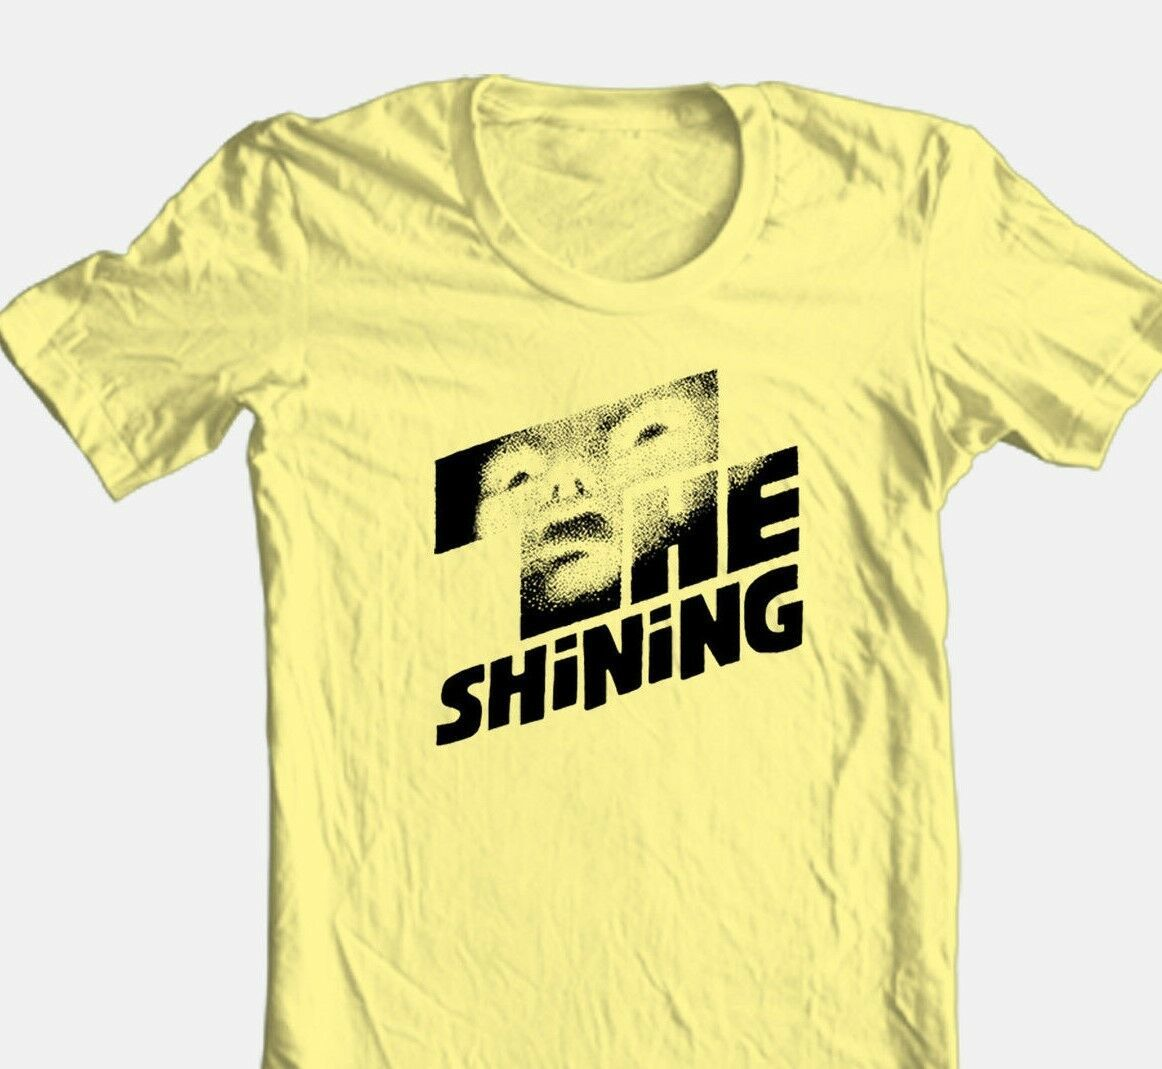 The Shining T-shirt retro 70's Stephen King horror movie 100% cotton yellow tee